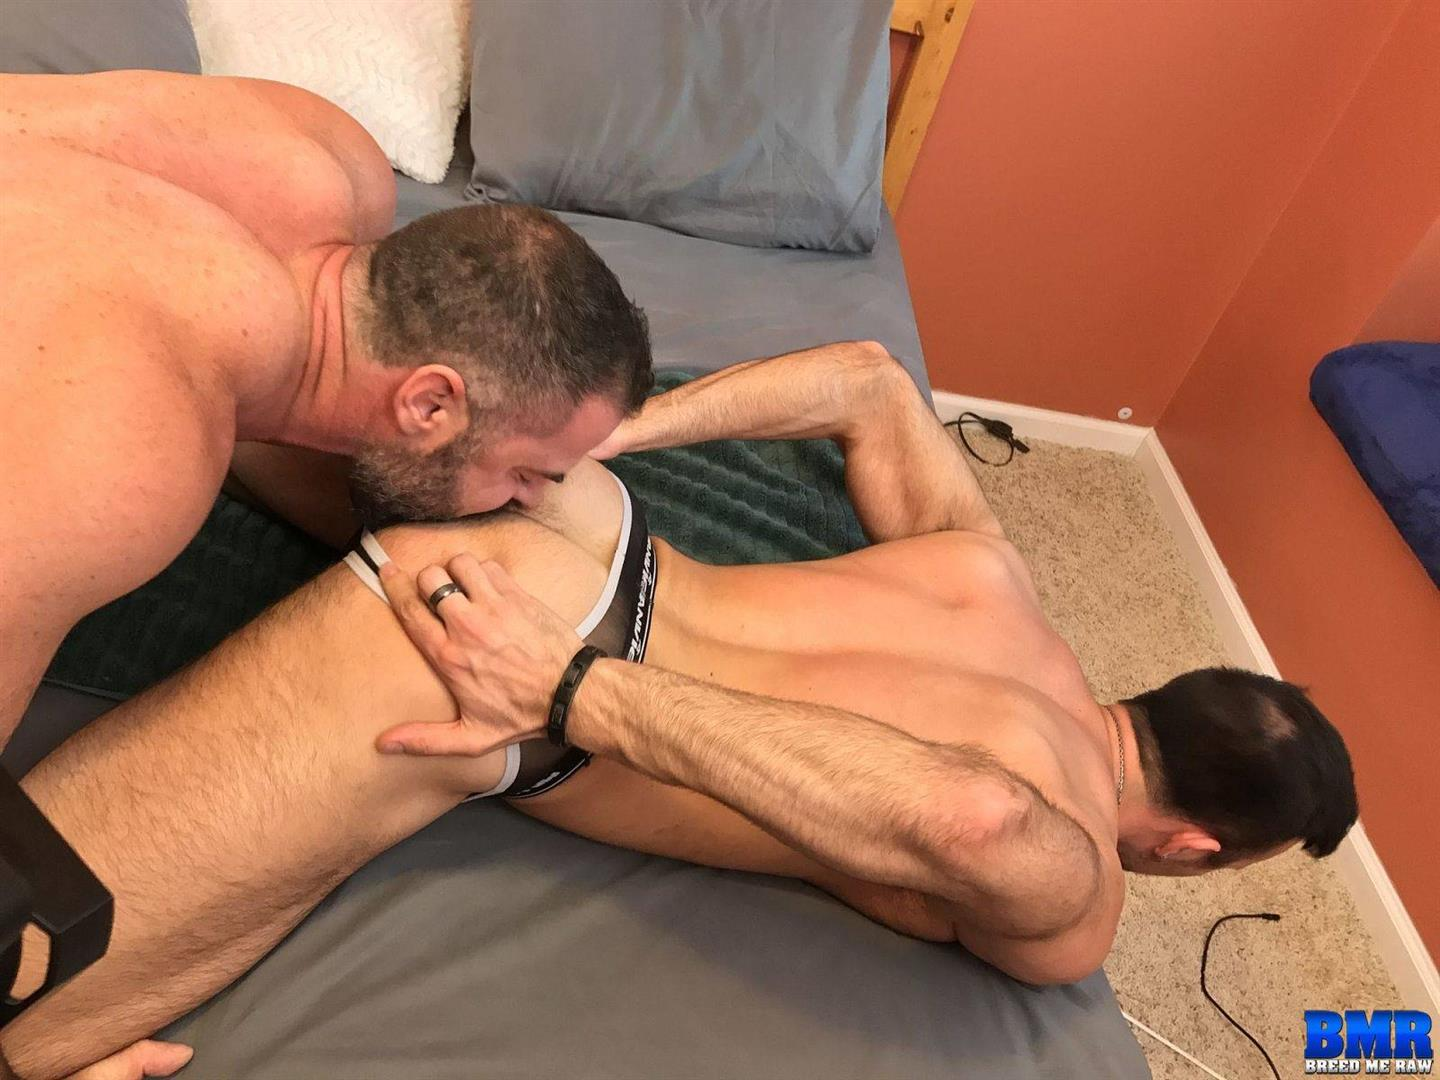 Breed-Me-Raw-Mason-Lear-and-Bishop-Angus-Thick-Dick-Daddy-Barebacking-Hairy-Young-10 Mason Lear Wants A Thick Hairy Bareback Daddy Cock